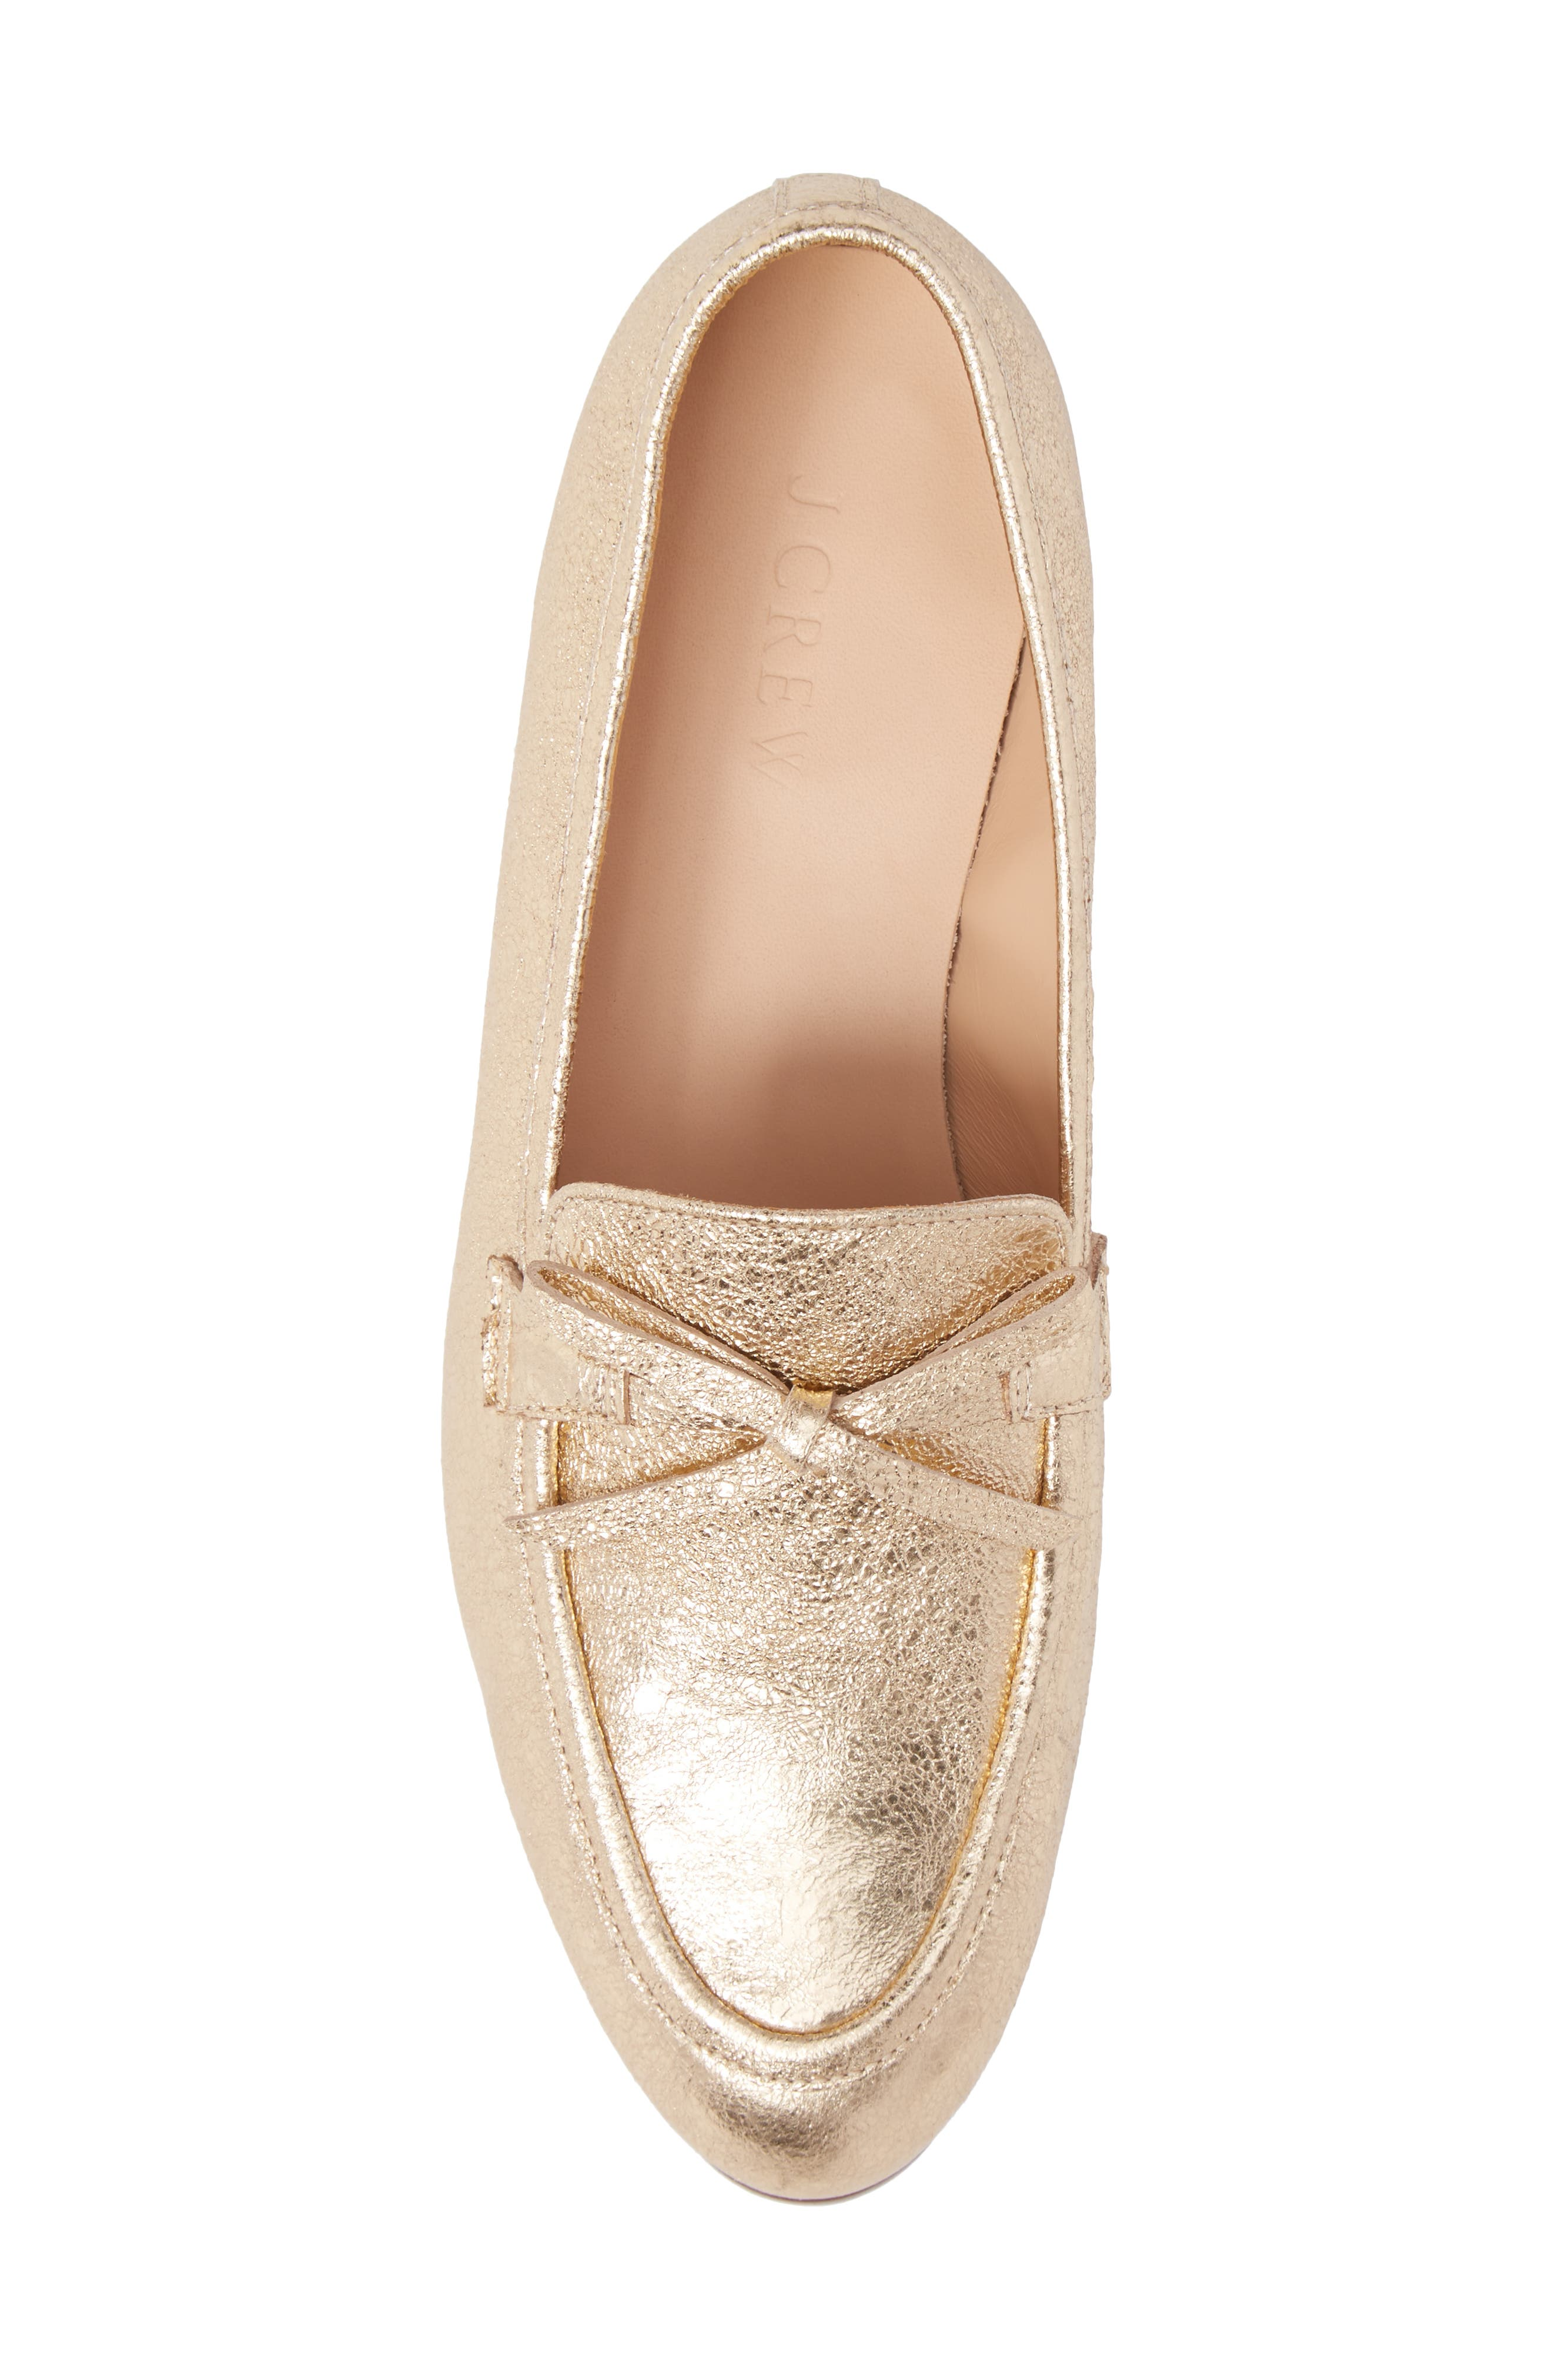 J. Crew Metallic Bow Loafer,                             Alternate thumbnail 5, color,                             710